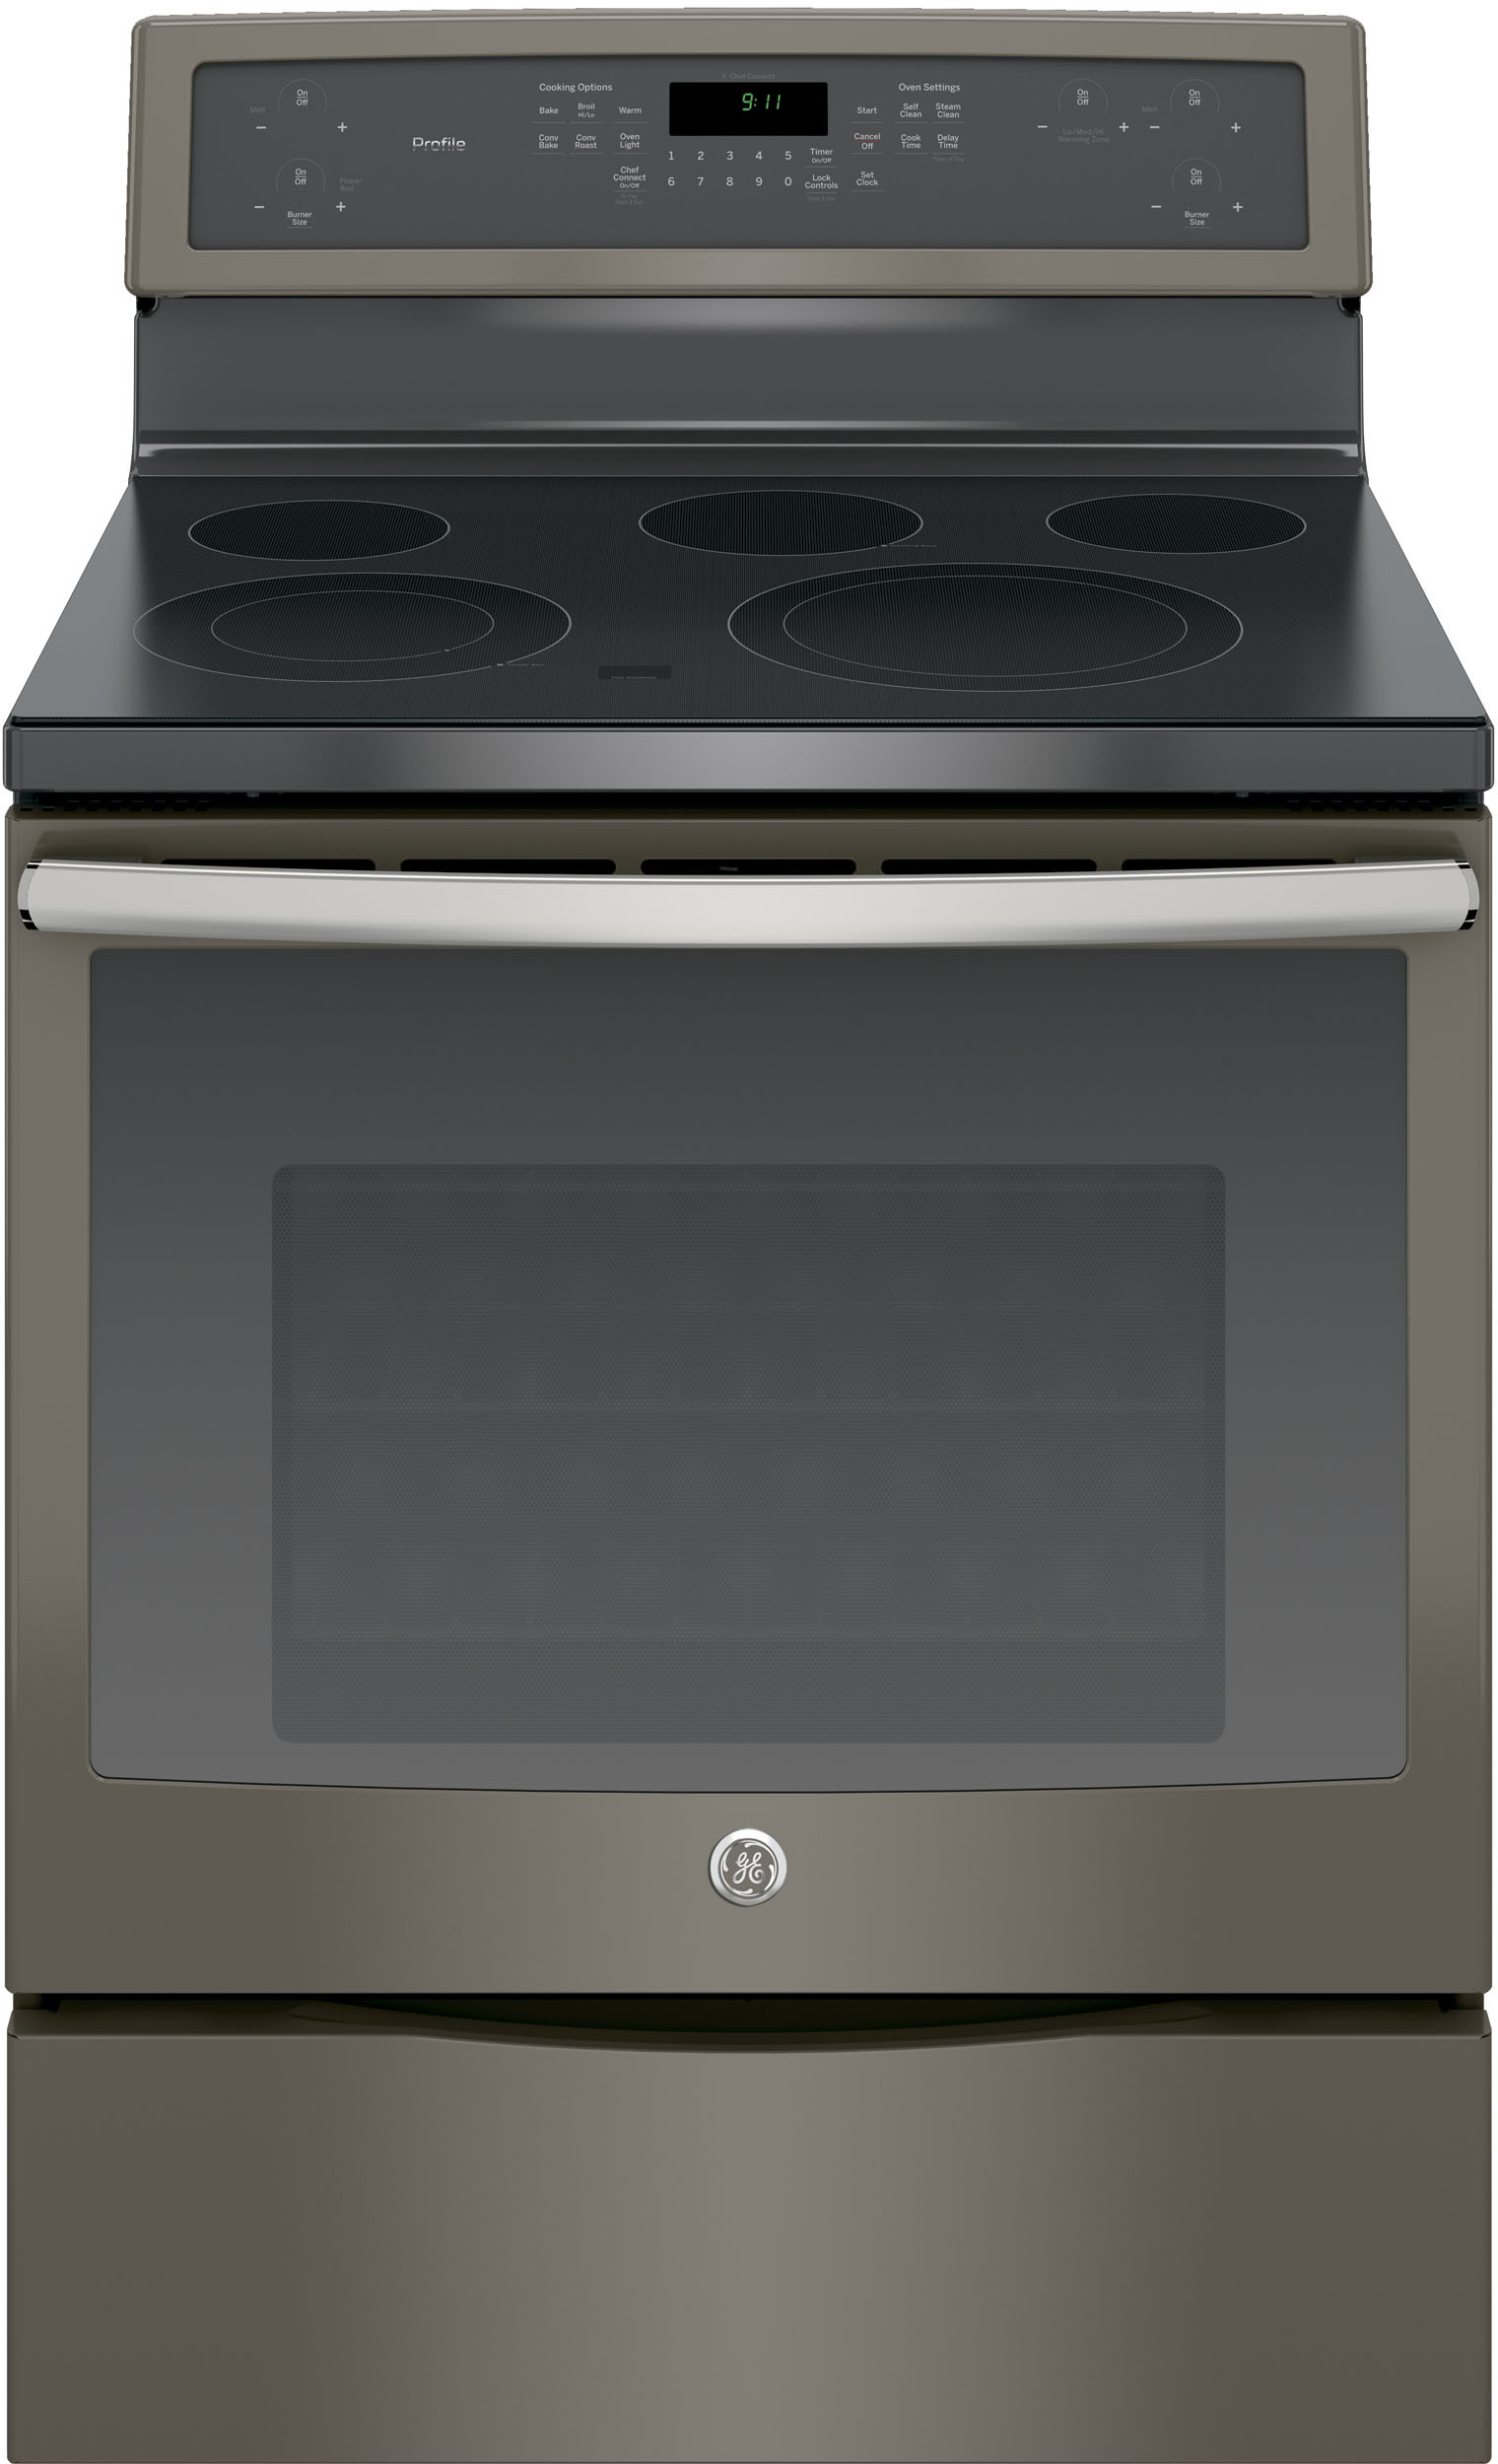 Countertop Warming Drawer Ge Pb911ejes 30 Inch Freestanding Electric Range With 5